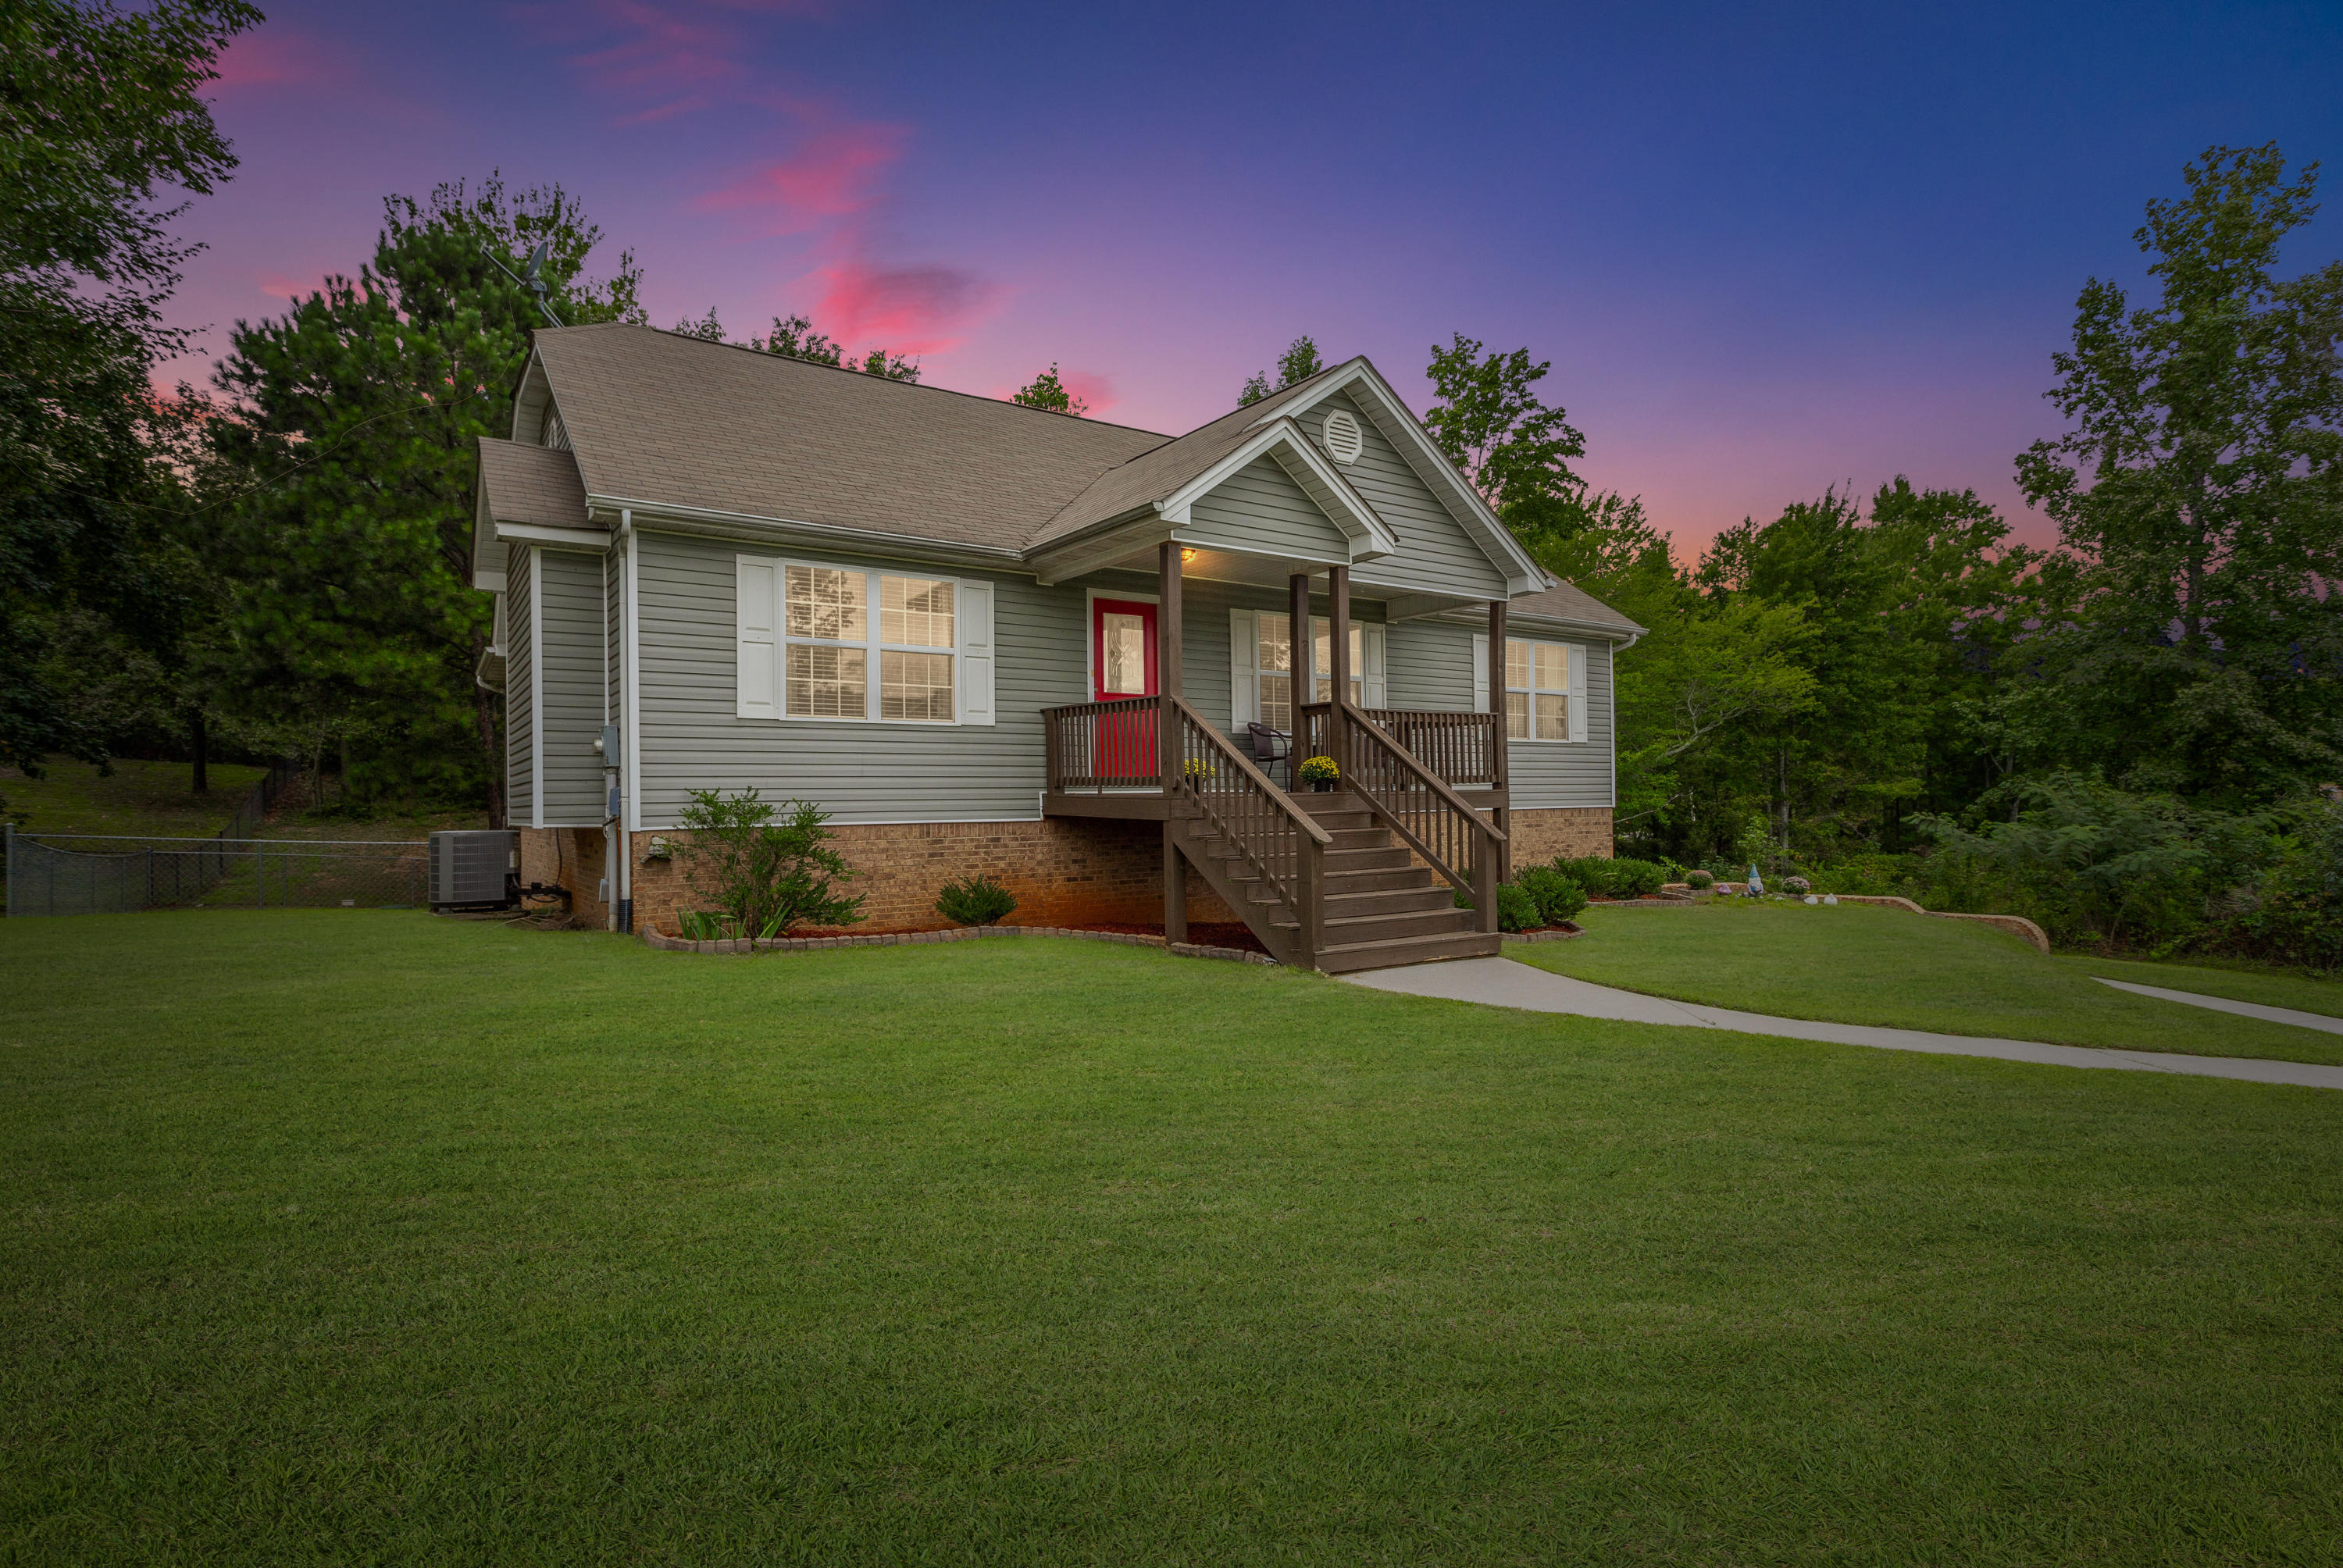 217 Home Place Ct, Cleveland, TN 37323